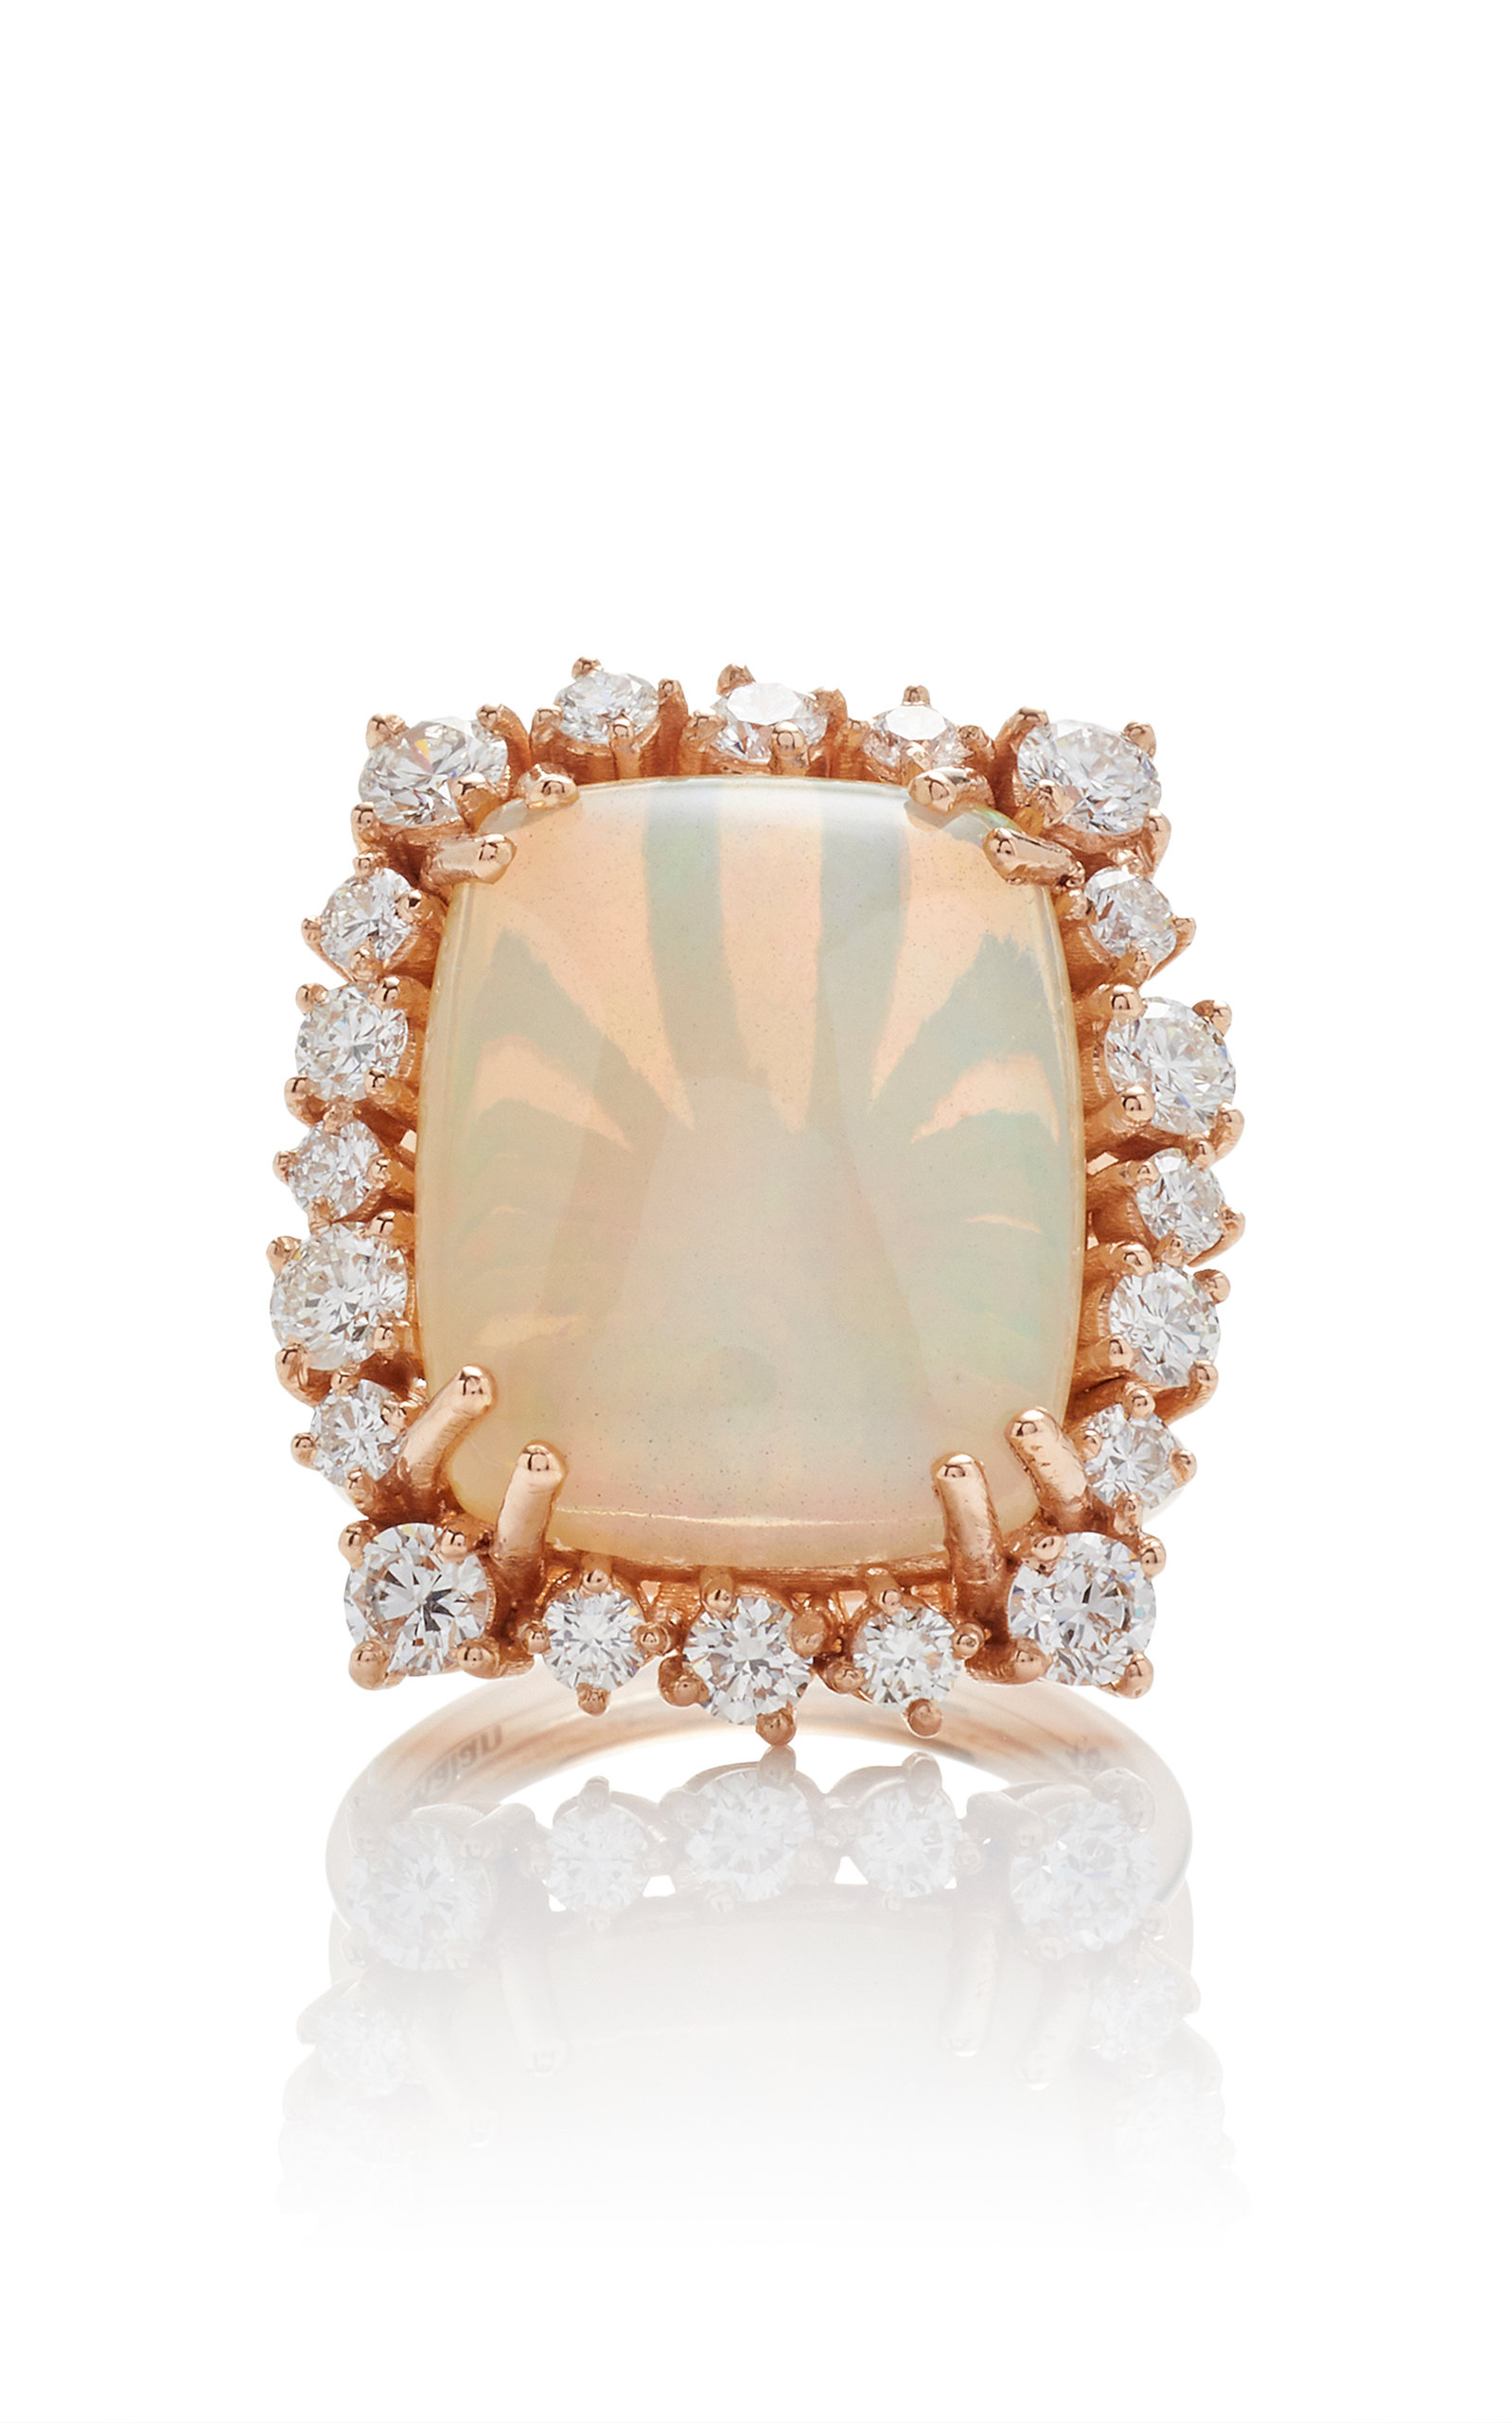 SUZANNE KALAN ONE-OF-A-KIND OPAL RING